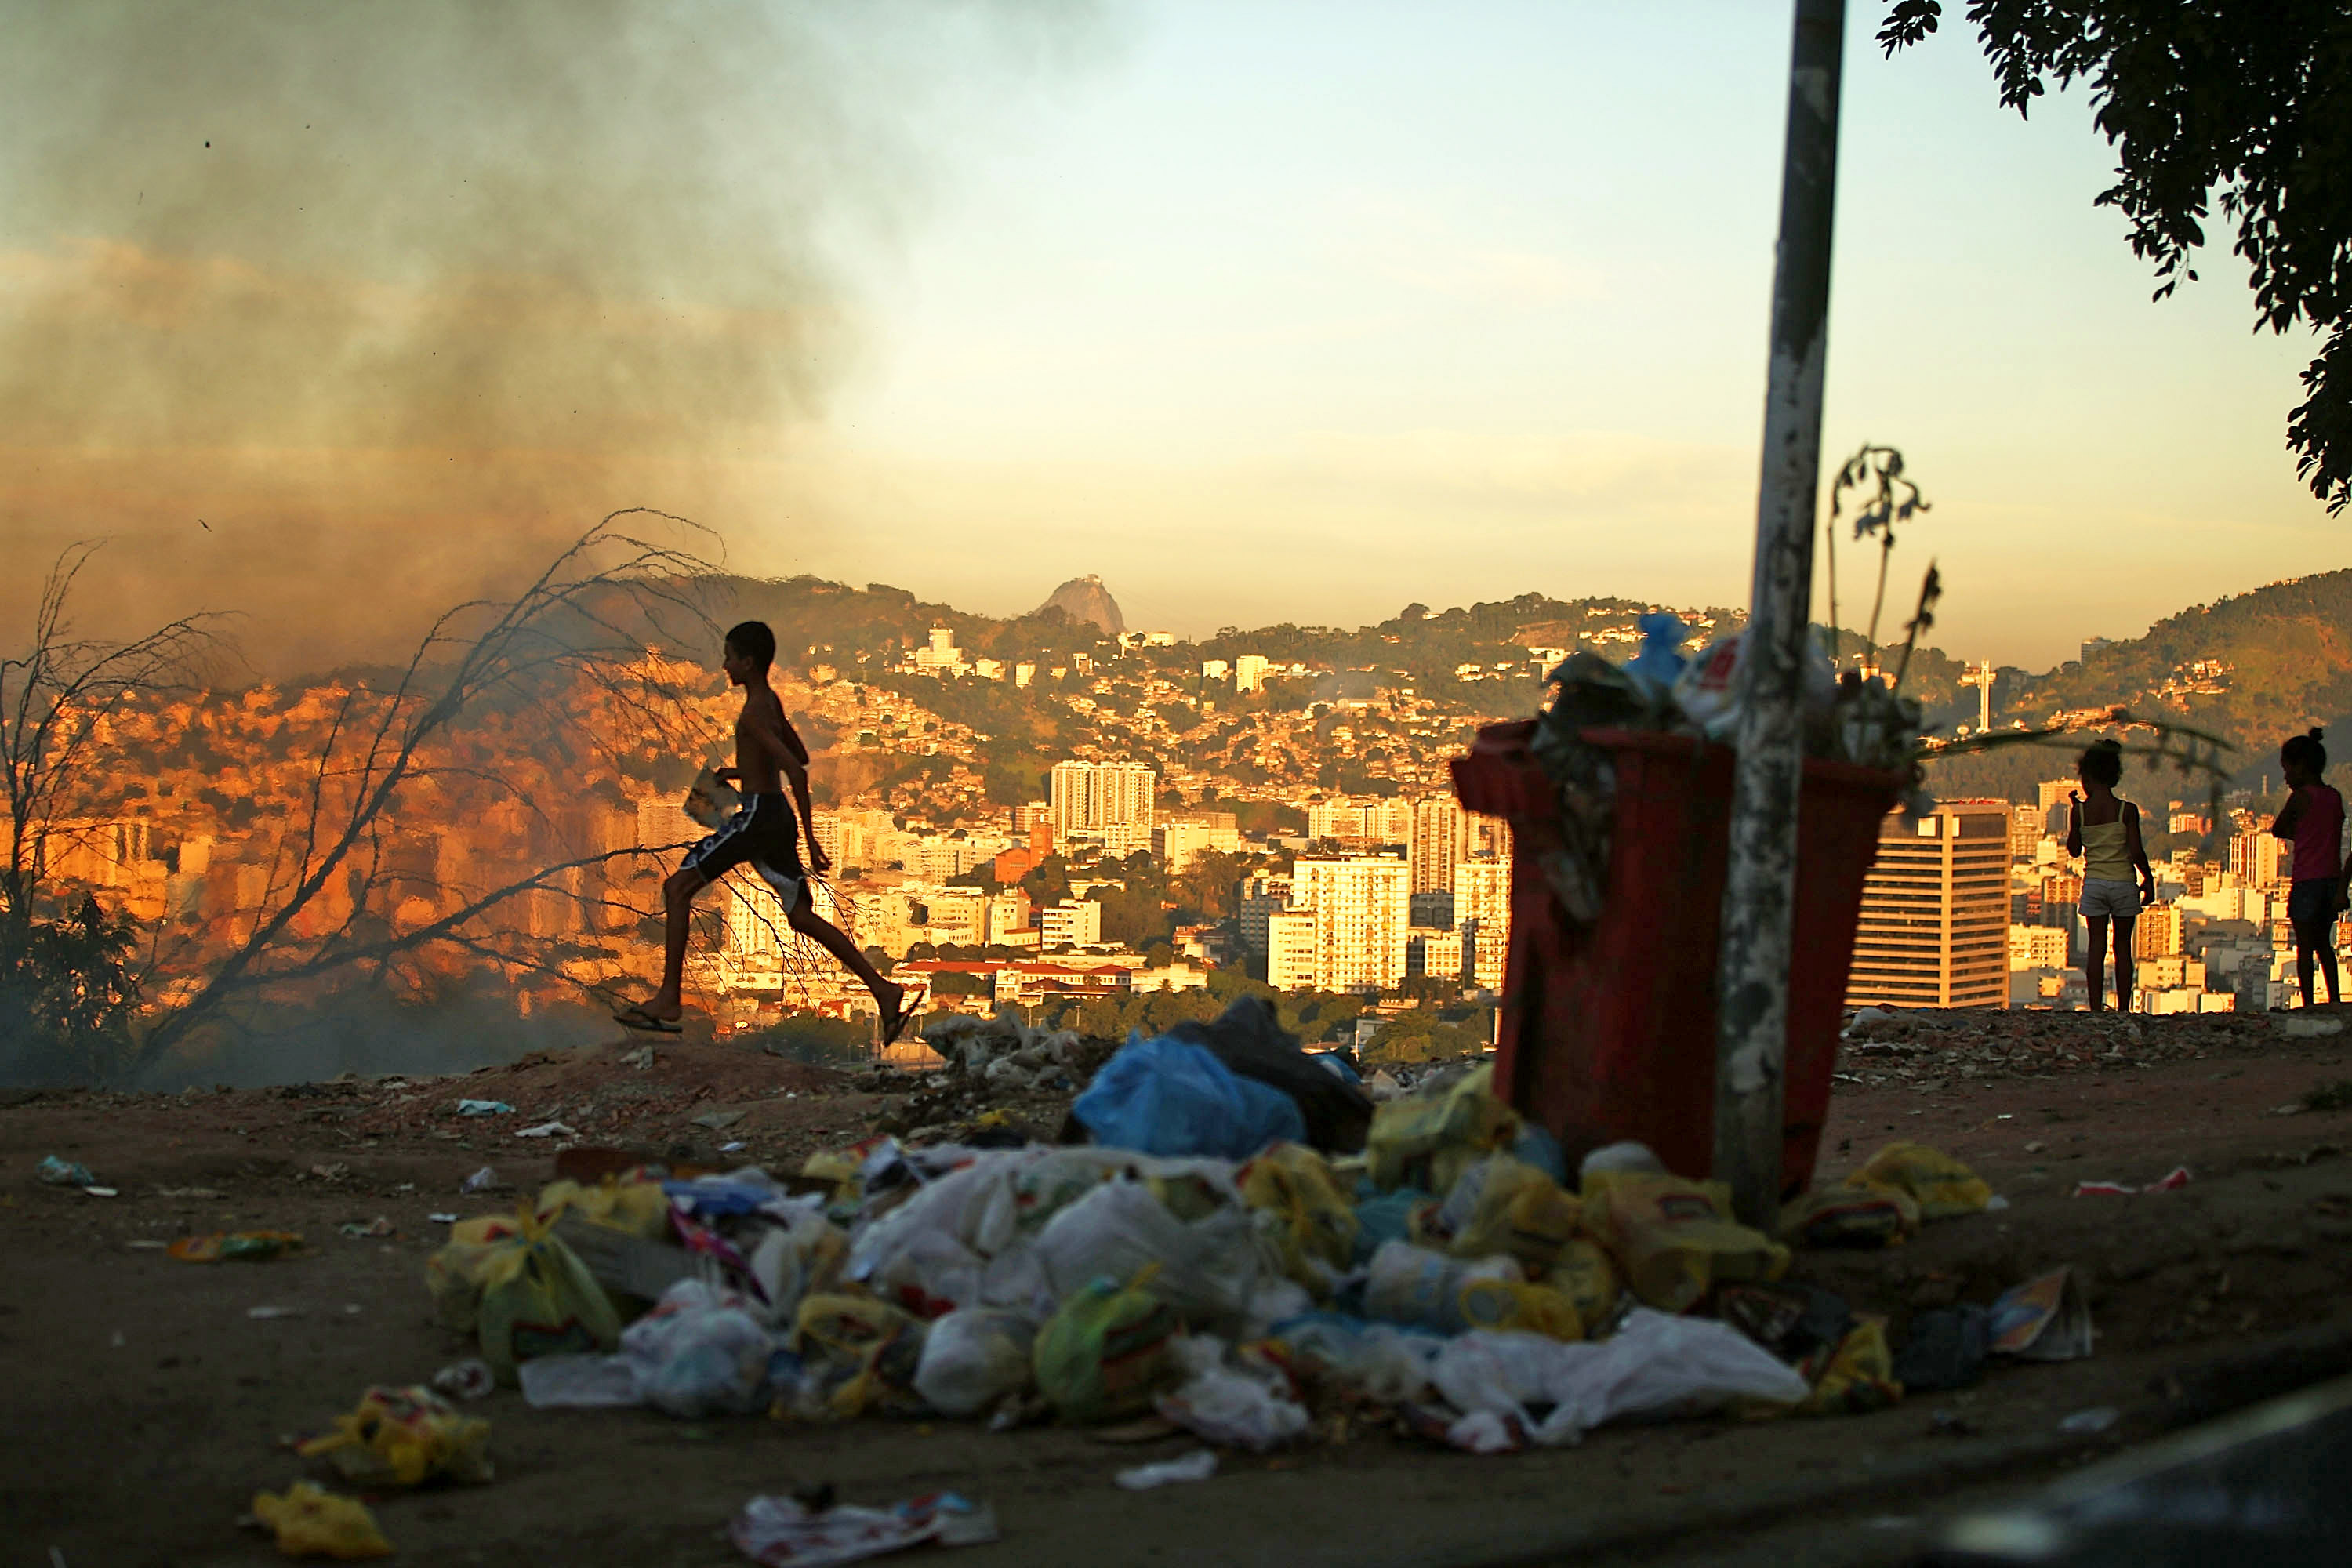 A trash fire burns due to the lack of government assistance of trash disposal in the Mangueira favela, which overlooks the famed Maracana Stadium on June 5, 2014 in Rio de Janeiro.